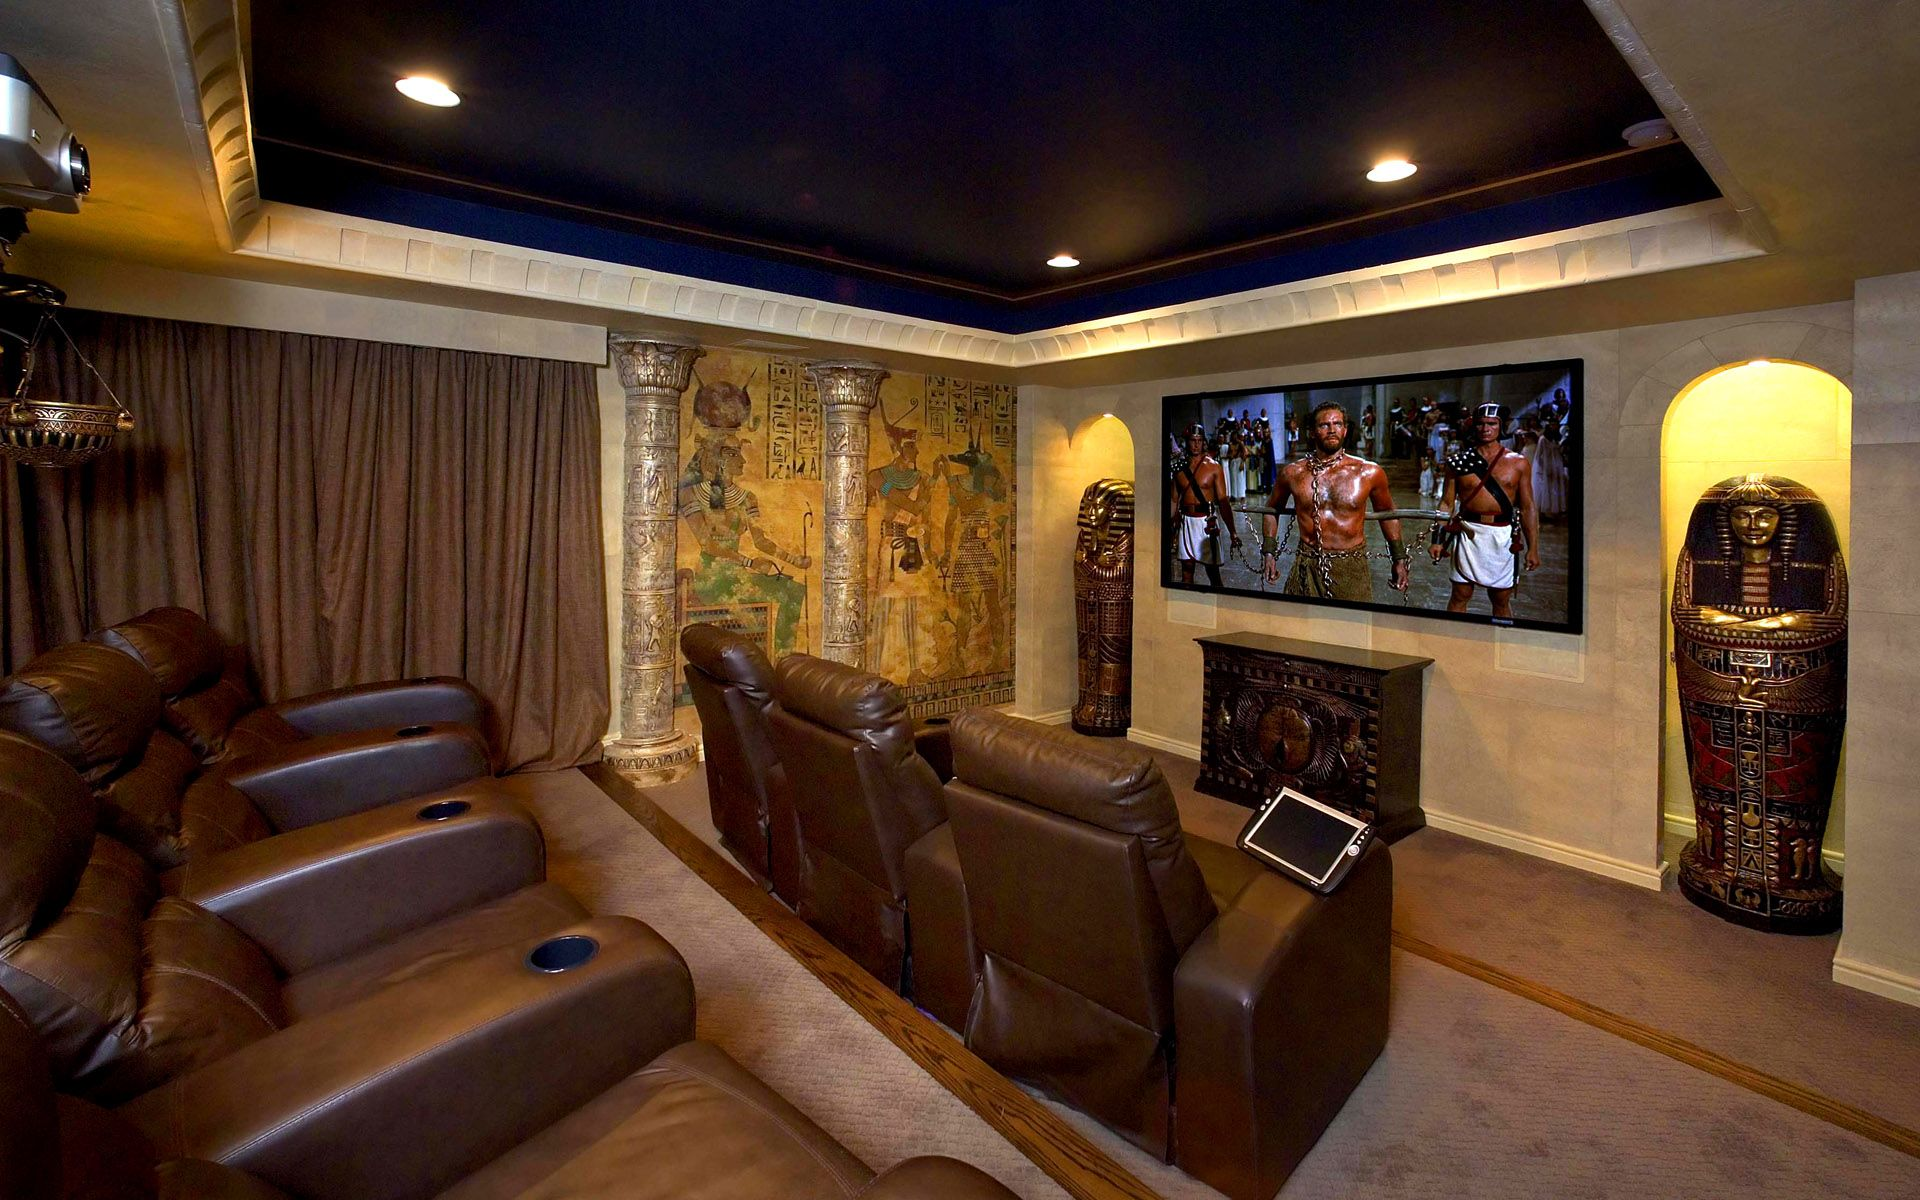 Basement Home Theatre Ideas Property hometheater wallpaper landscape design theater wallpapers images